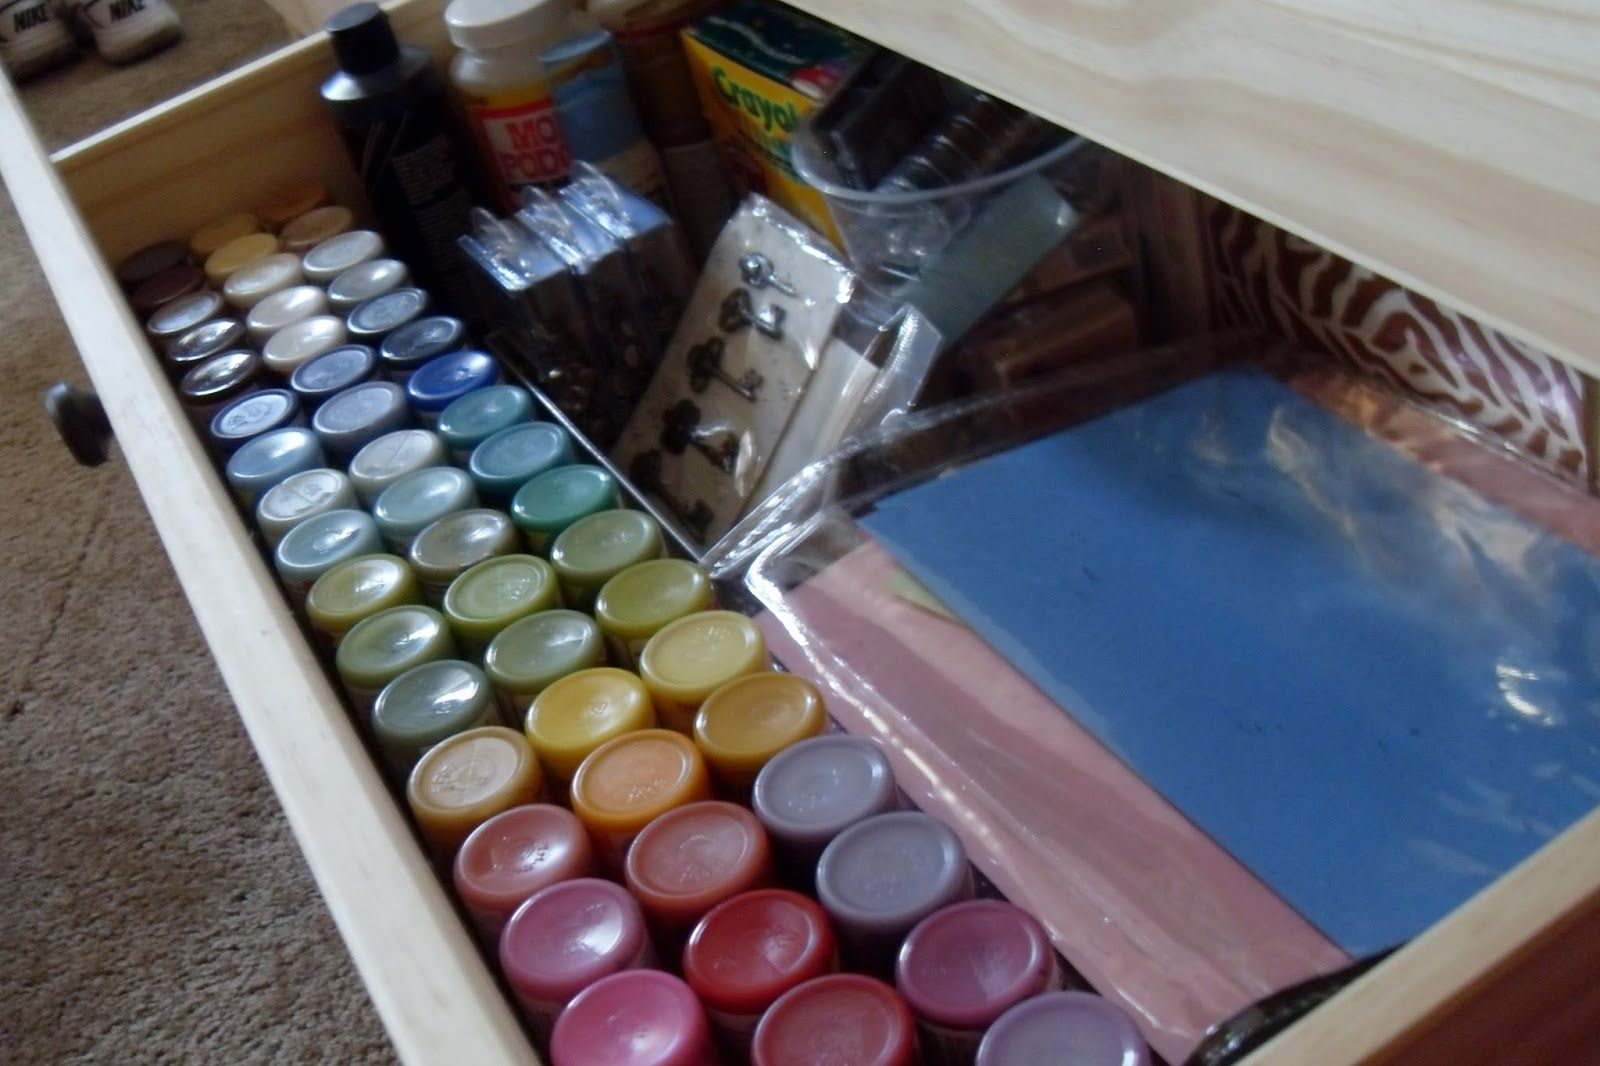 #papercraft #crafting supply #organization. Craft organization in a dresser. Use a tension rod to keep paints upright. So smart!